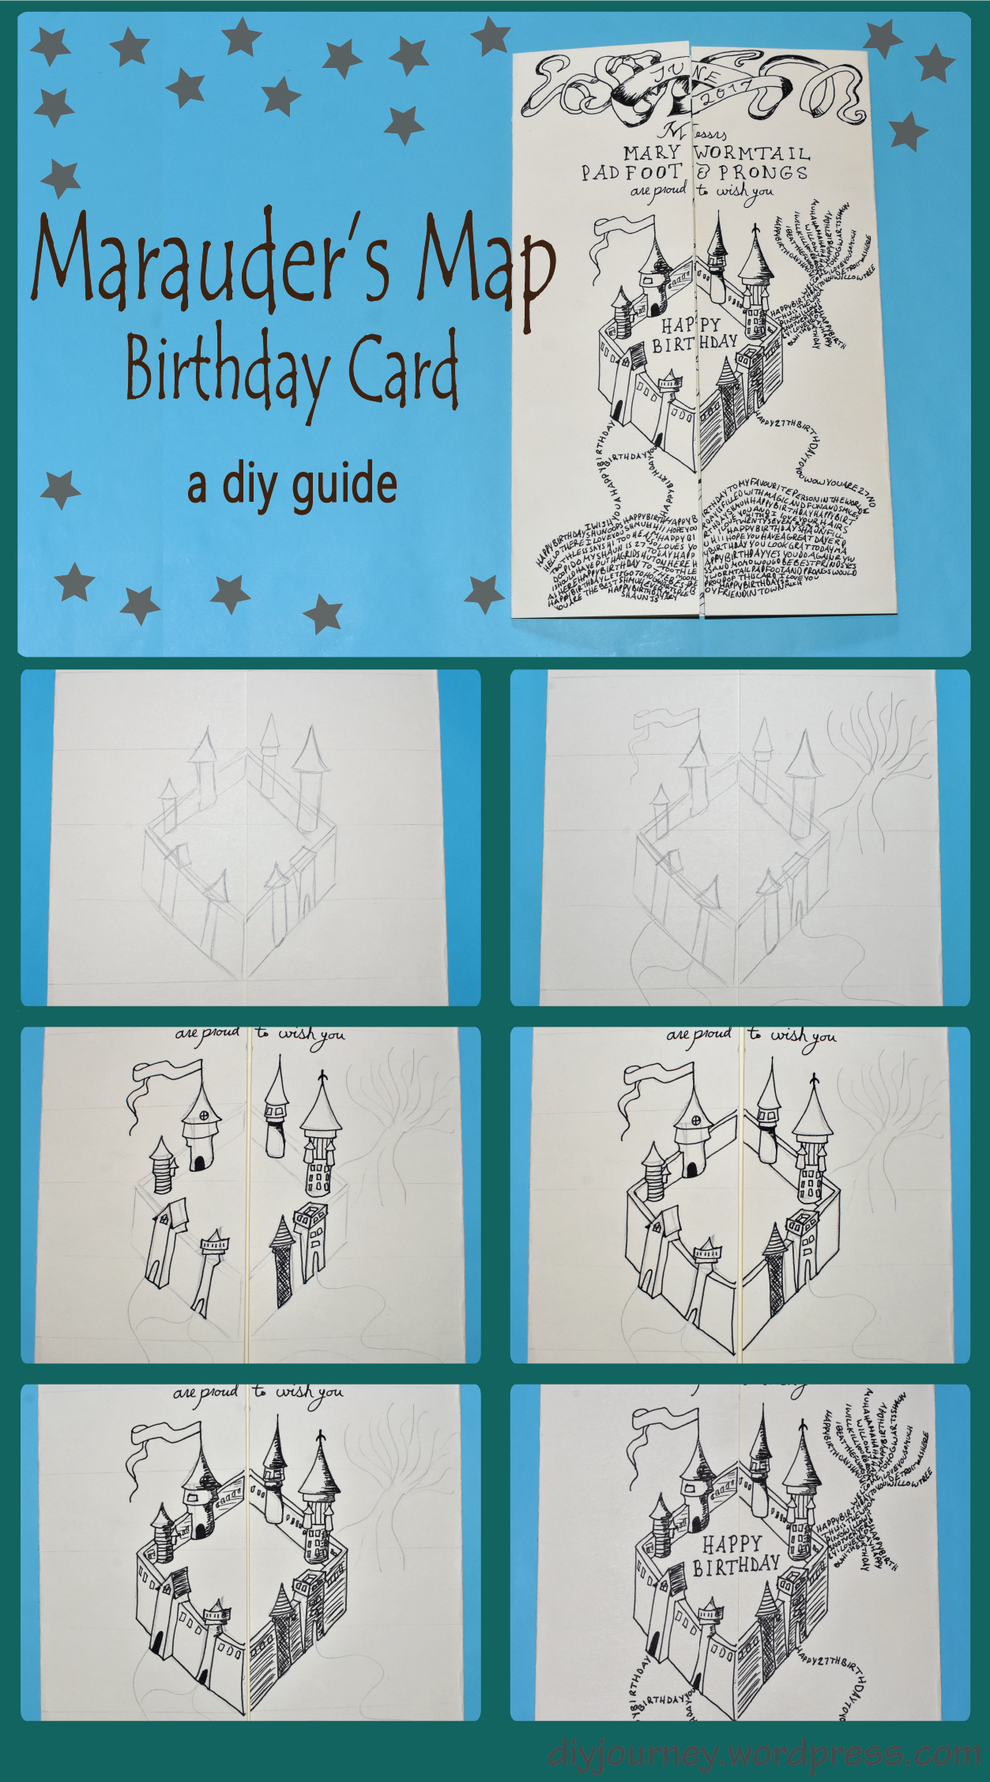 Marauders Map Birthday Card A Diy Guide Learn How To Make The Iconic From Harry Potter Series In This Homemade Tutorial